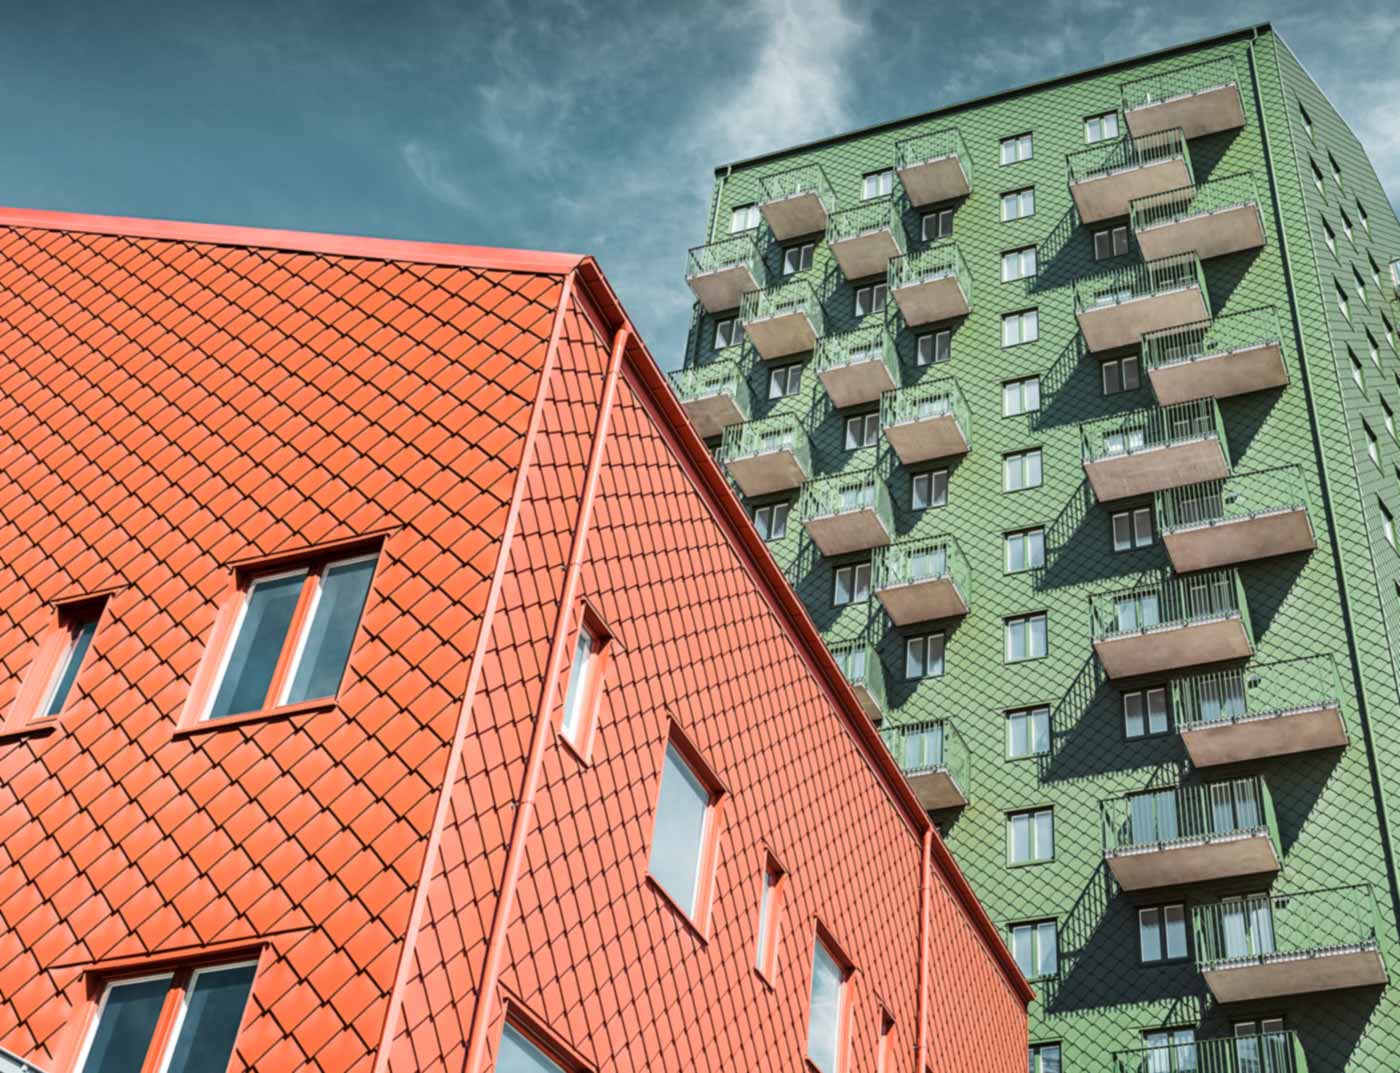 Swedish residential buildings with balconies and PREFA rhomboid wall tiles in green and brick red.